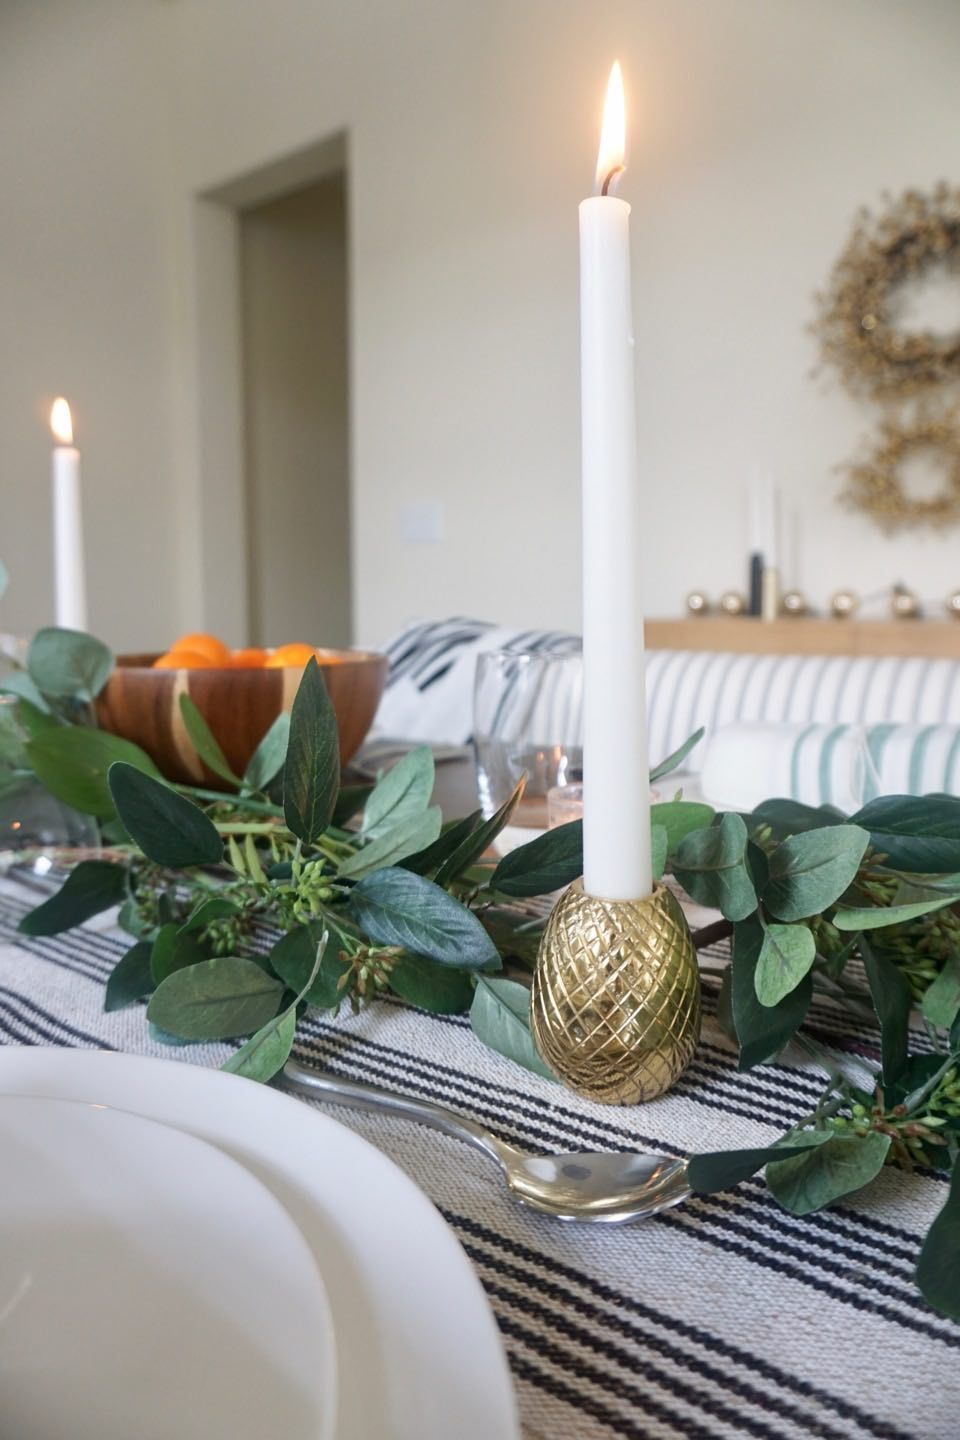 A Scandinavian Glam Holiday Christmas Table Decorations